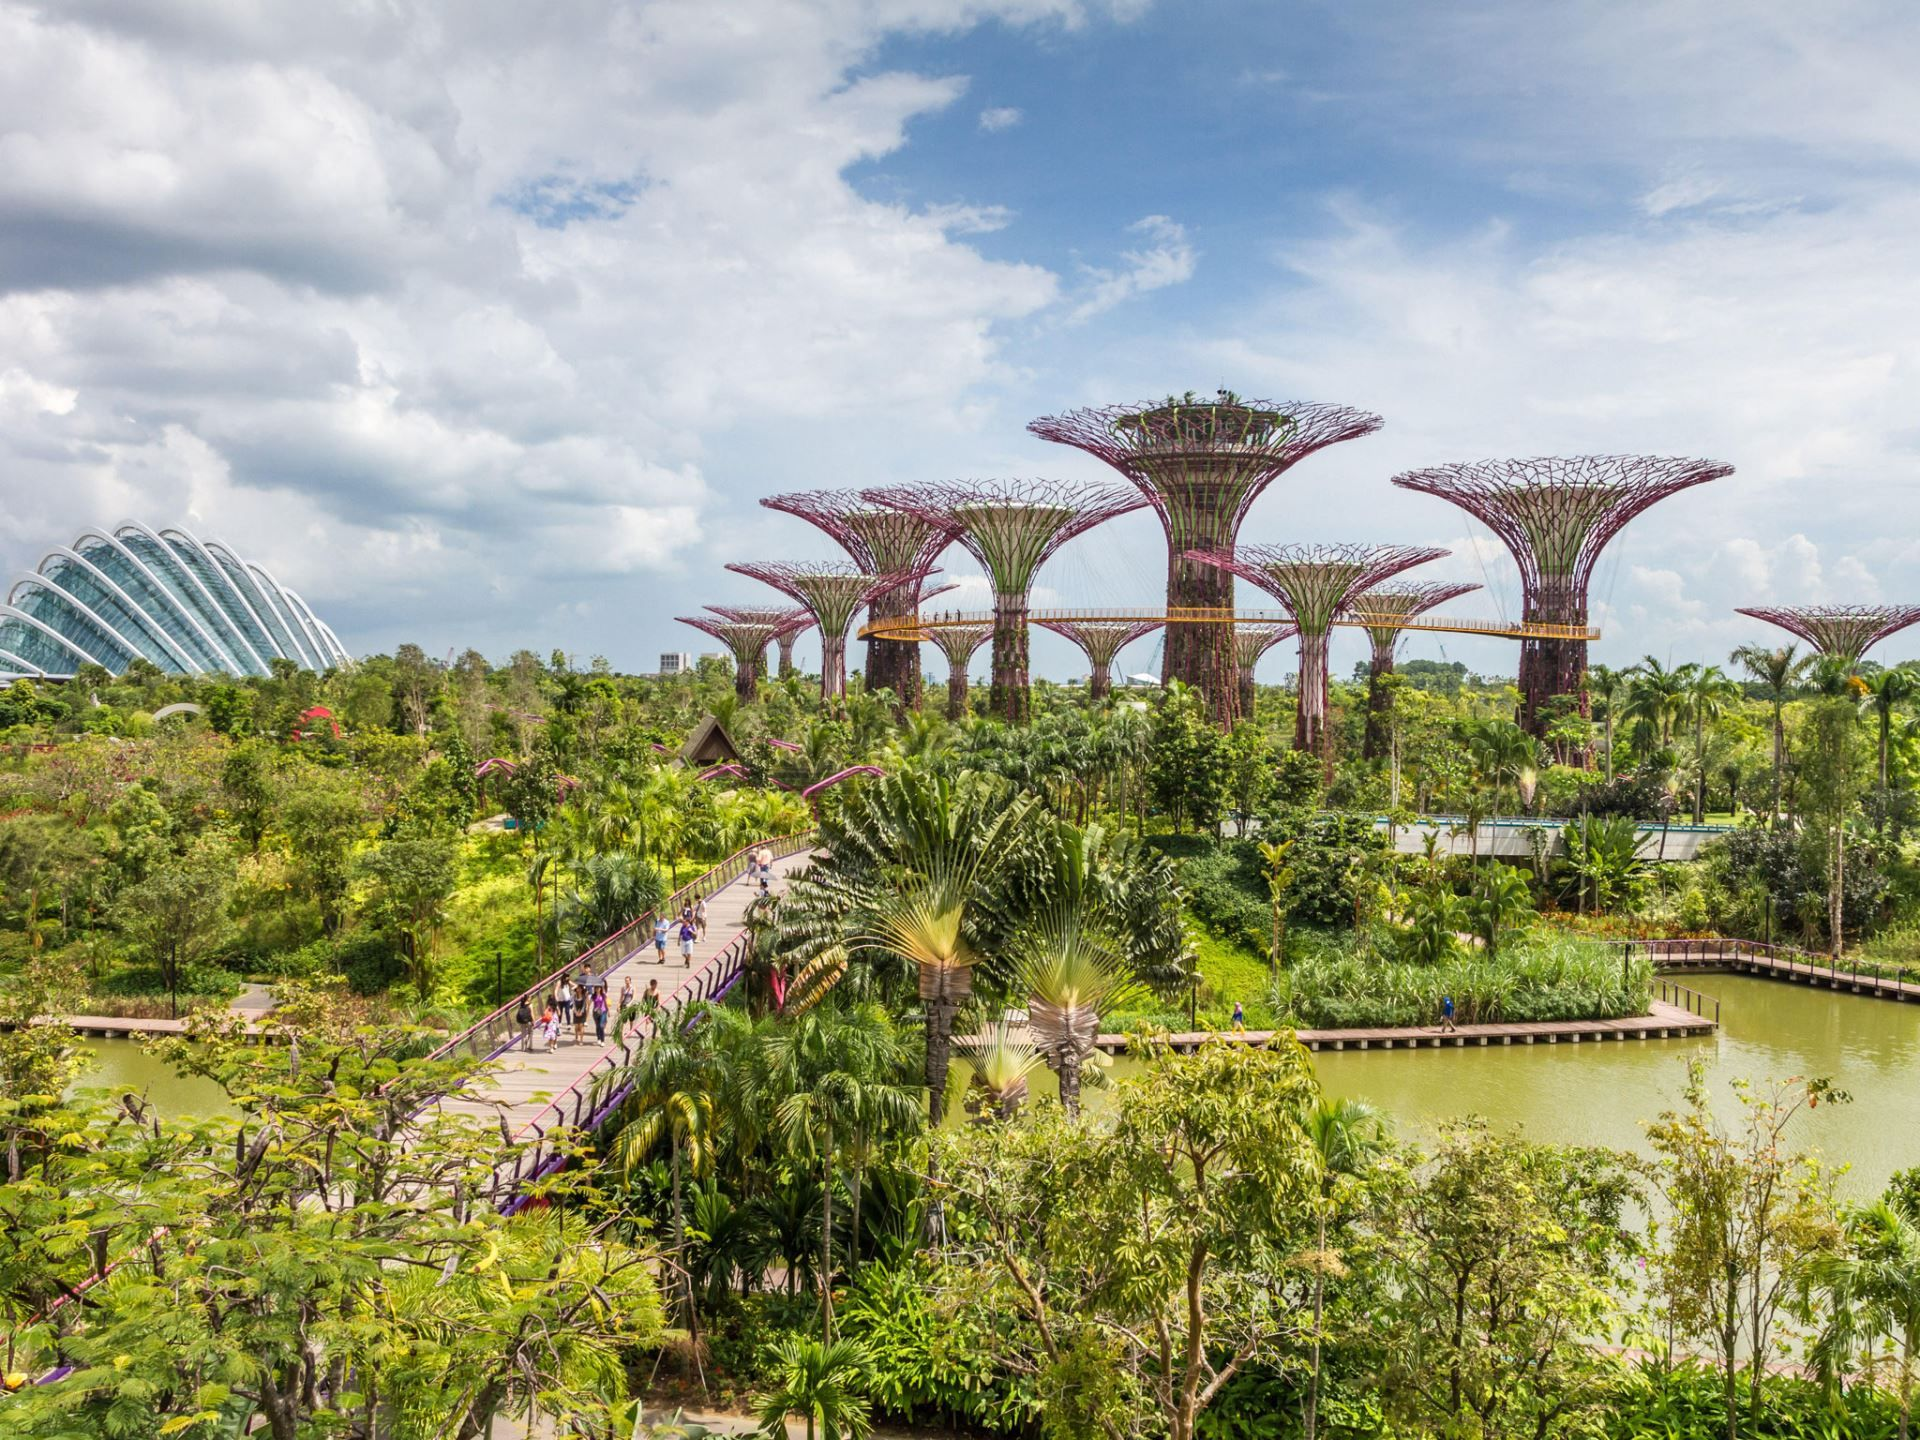 ff3c577d780c3c262480cc7d5fd576b4 - How Long To See Gardens By The Bay